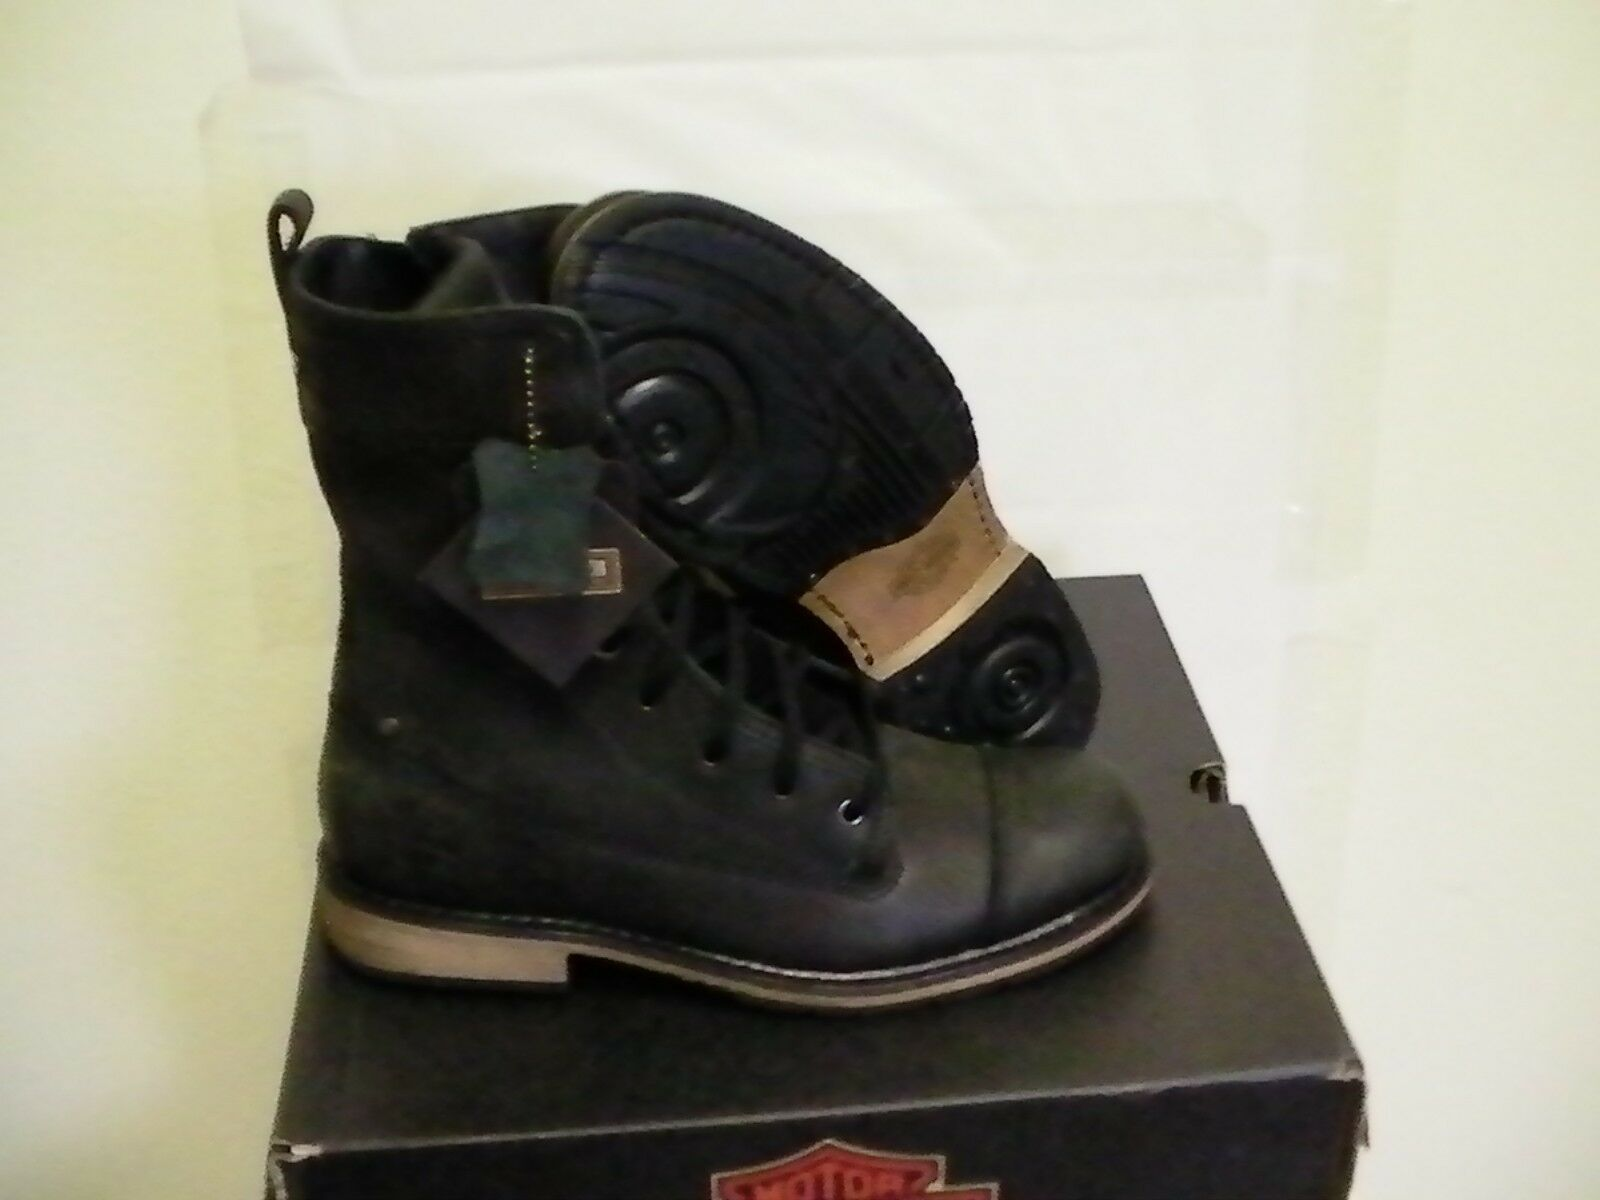 Harley davidson mens riding boots kelton size 8.5 us new with box